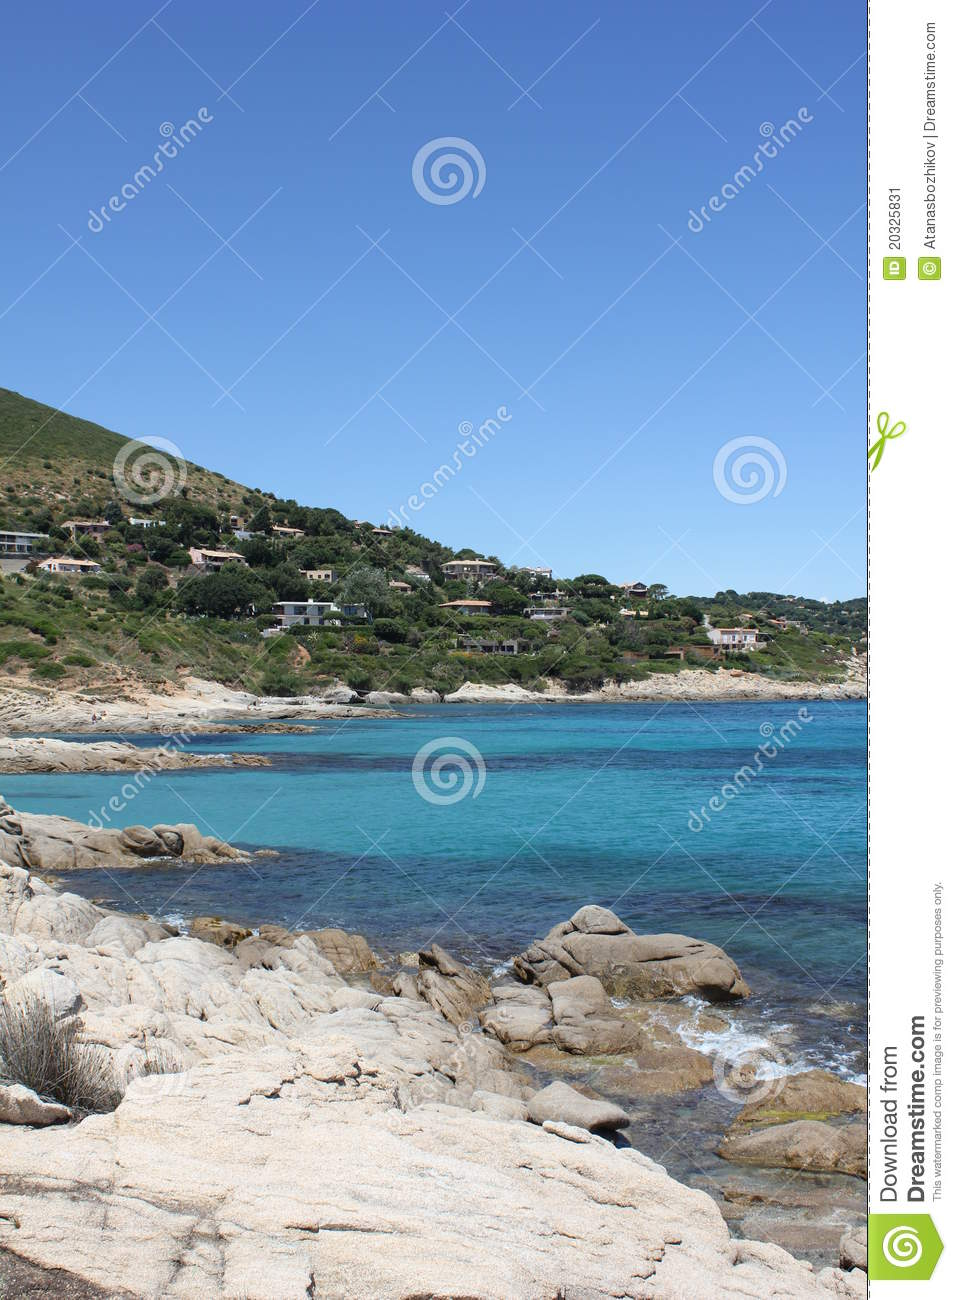 Download The French Riviera stock image. Image of famous, principality - 20325831